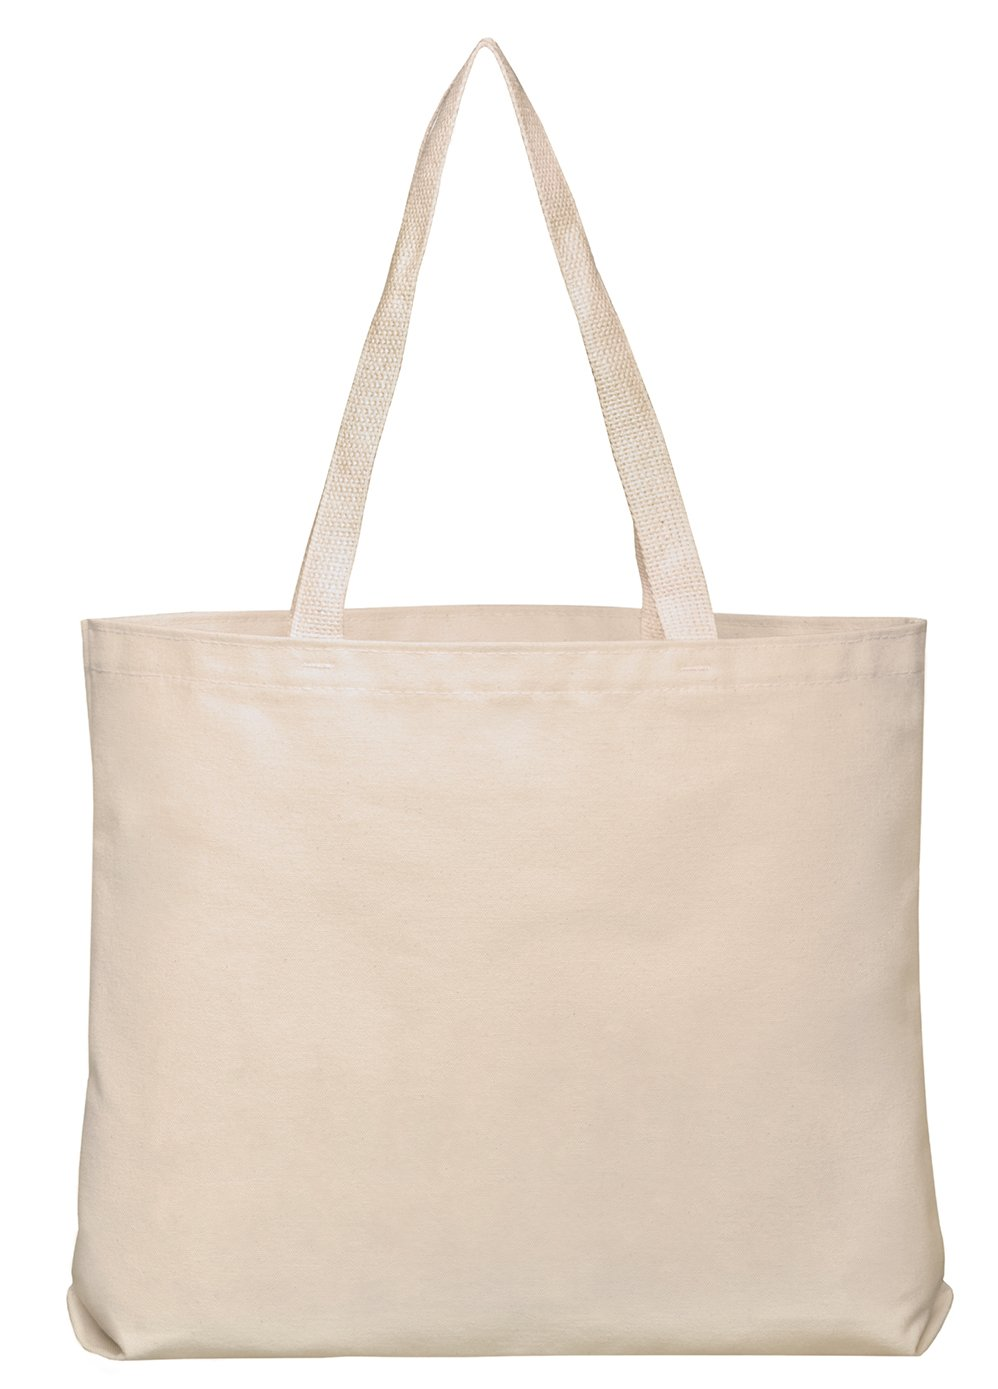 Set of 25 10oz Cotton Canvas Shoulder Tote Bags - Reusable Made in USA (Natural) by Enviro-Tote